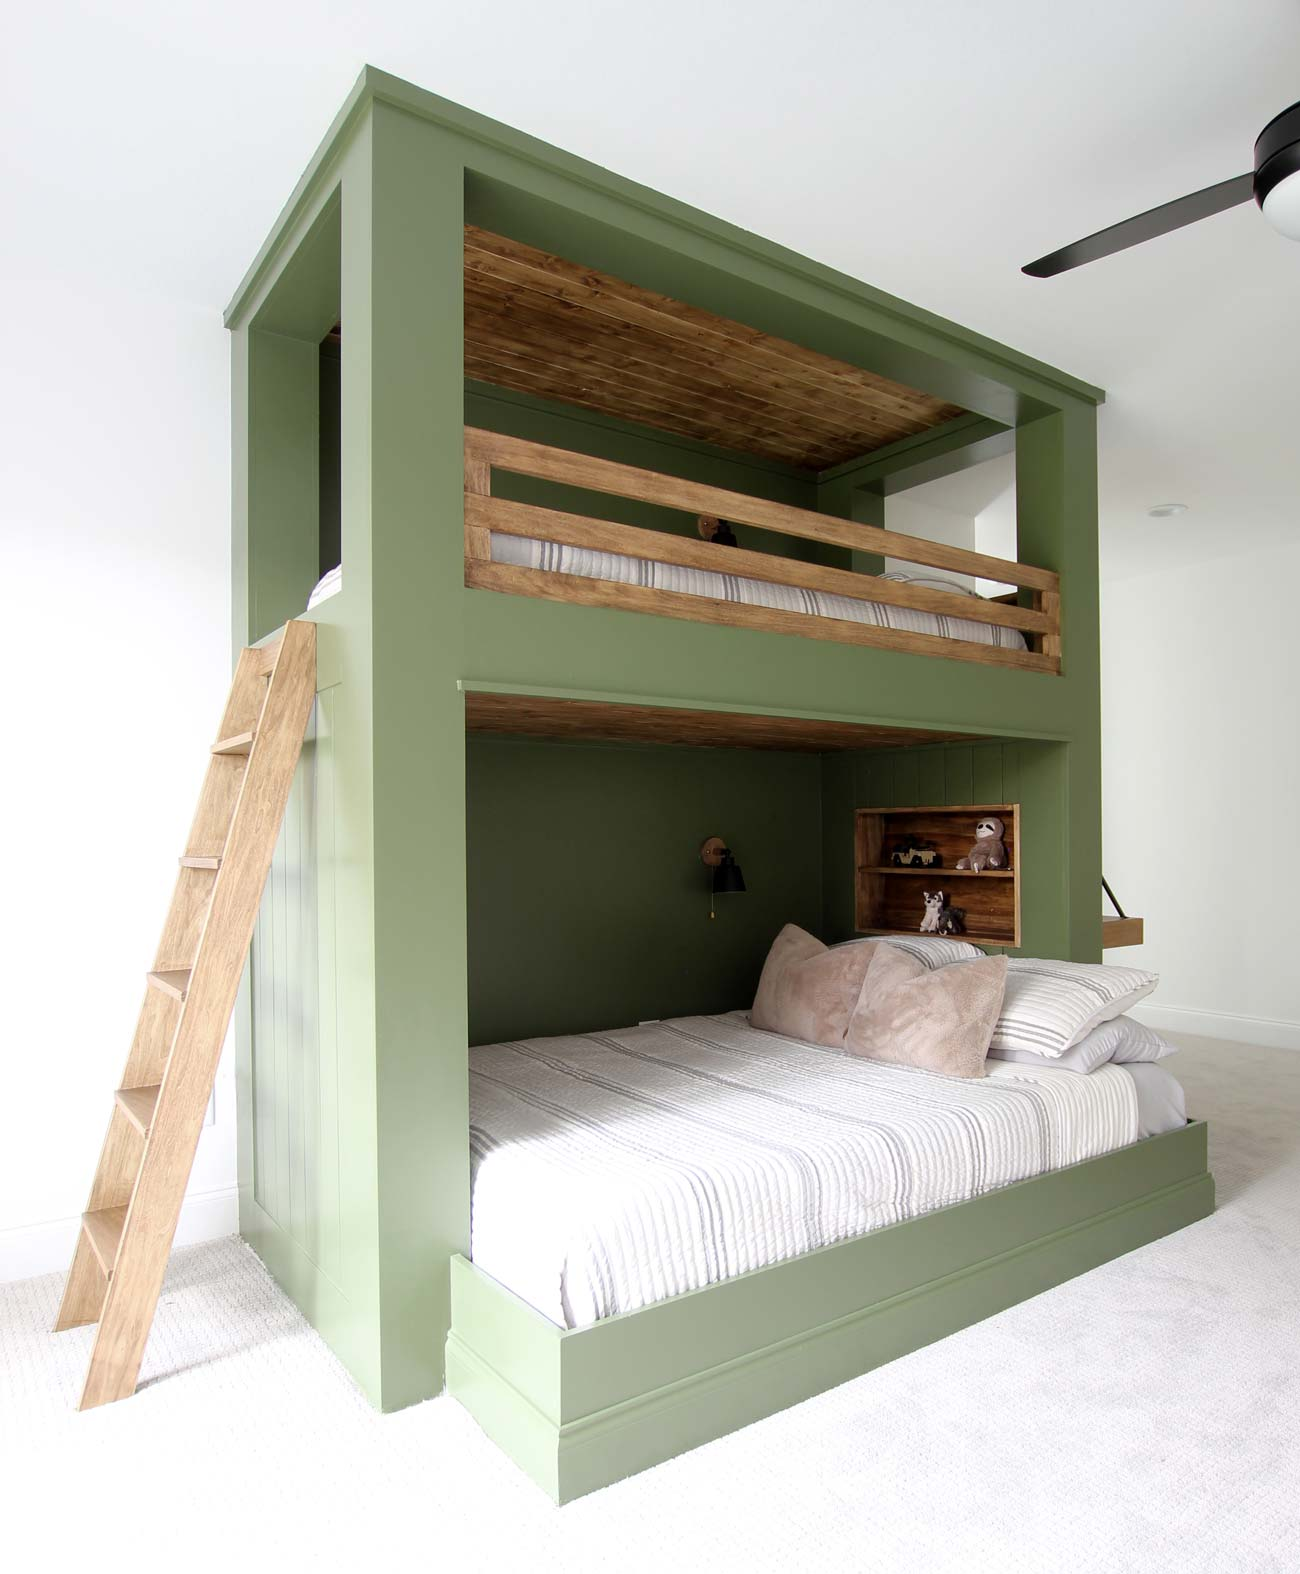 How To Build A Bunk Bed Ladder Plank And Pillow